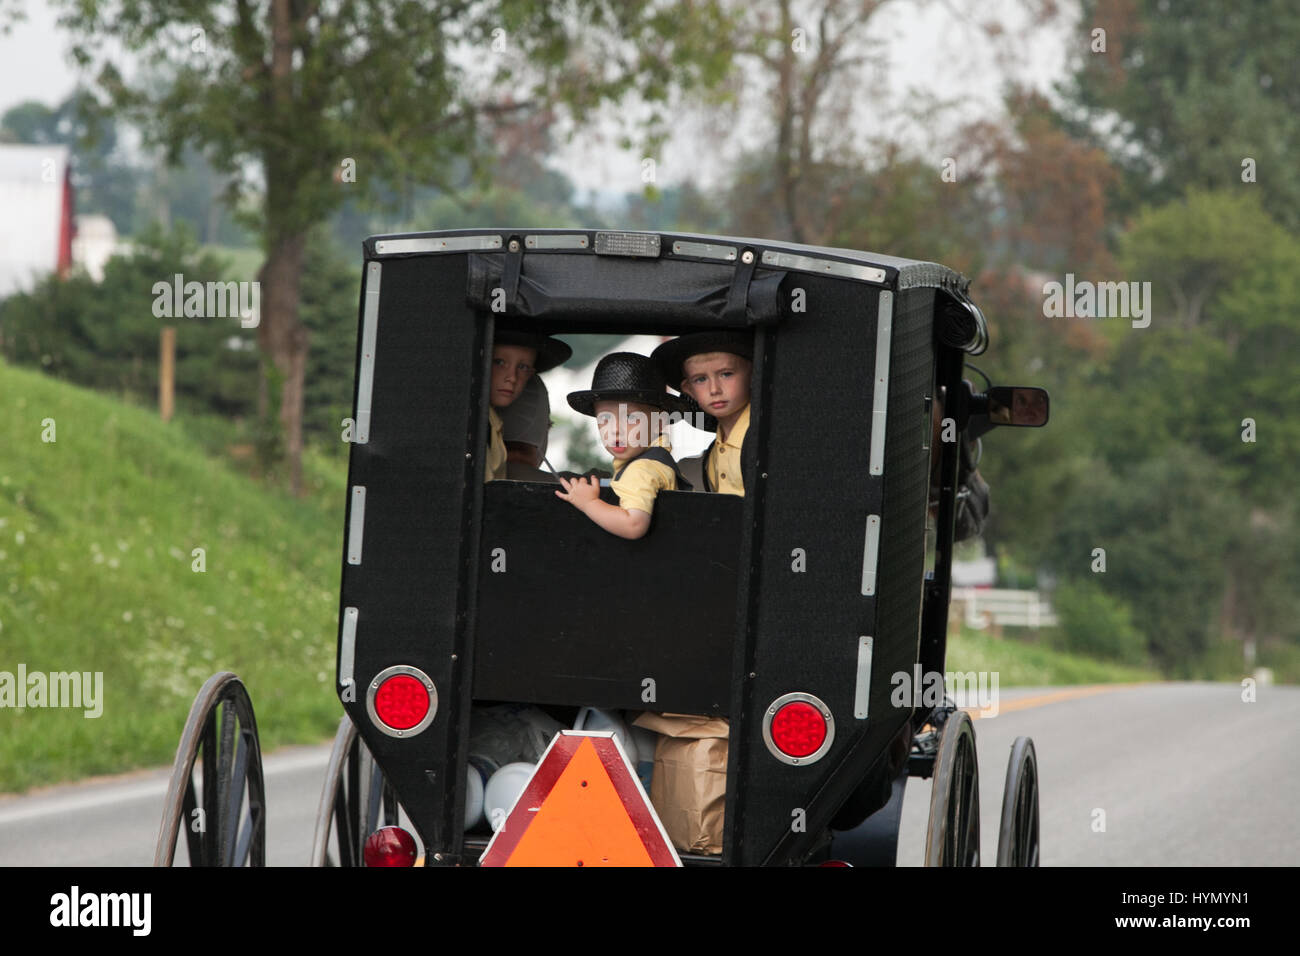 Three young Amish boys stare out the rear window of a horse-drawn buggy. - Stock Image